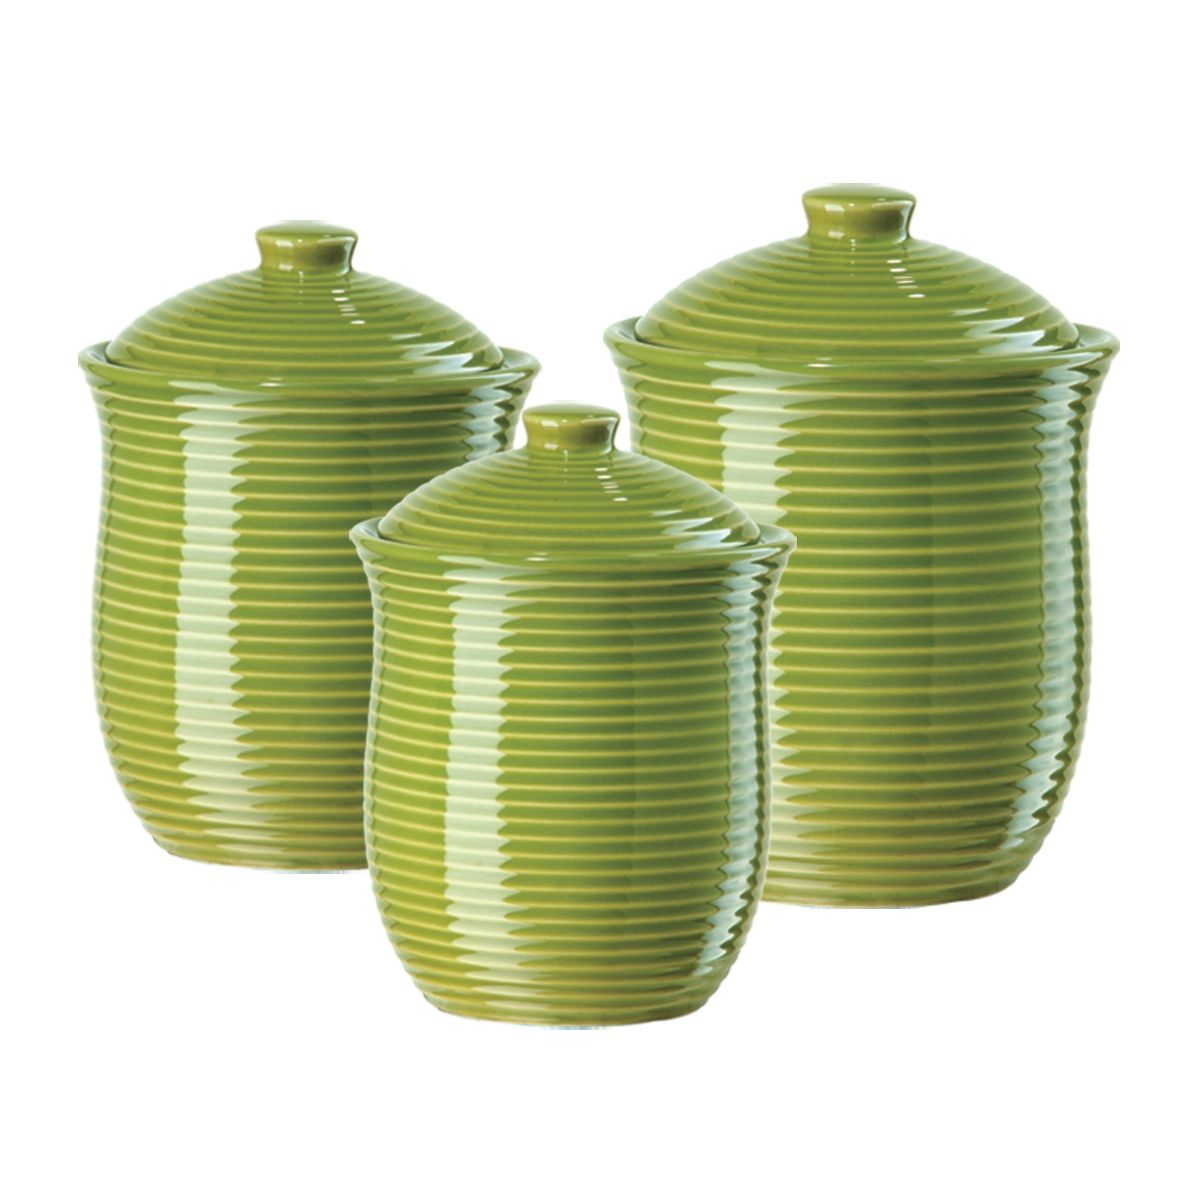 canister sets | Storage canisters for the kitchen | CANISTER AND ...